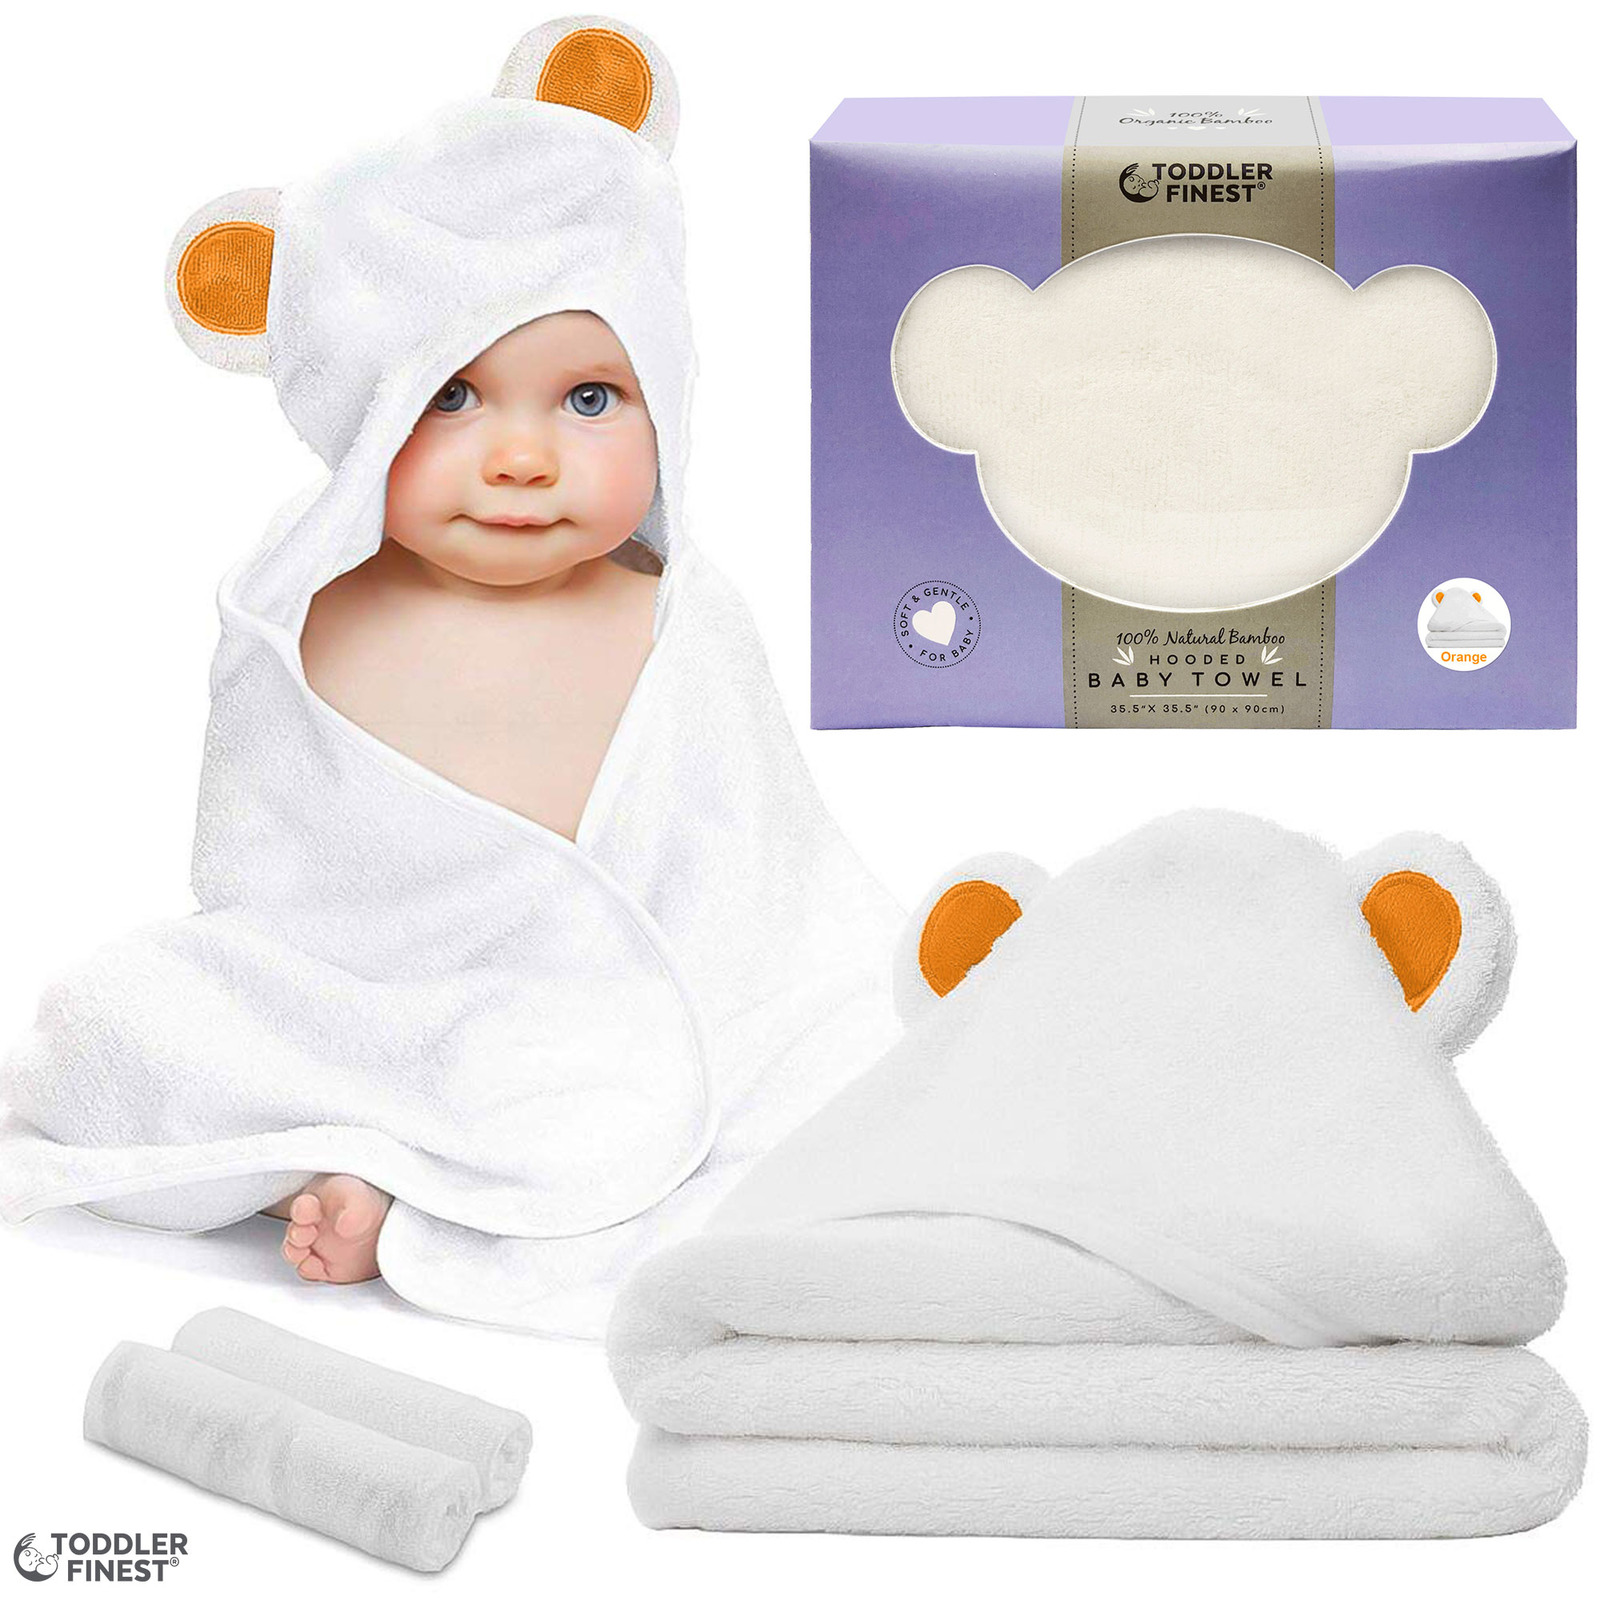 ToddlerFinest Baby Bamboo Hooded Bath Shower Towel (Orange)